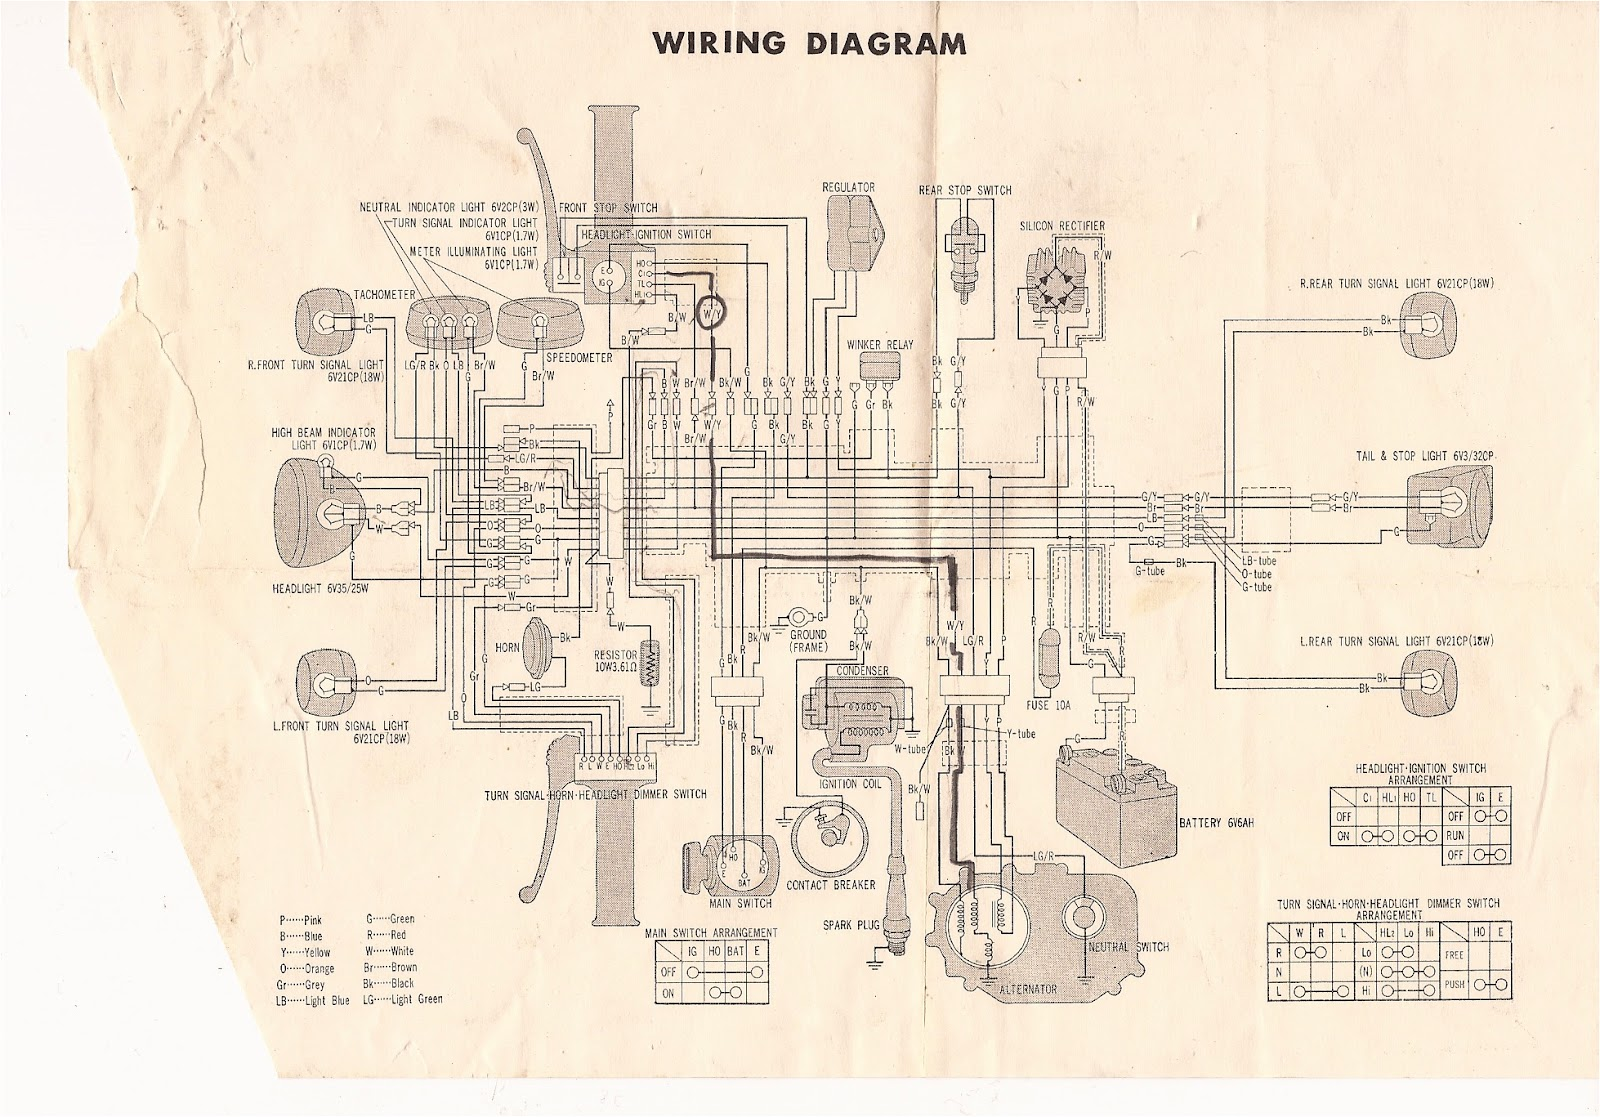 honda pc800 wiring diagram electrical wire symbol & wiring diagram \u2022 1981 honda cb750f honda pc800 wiring diagram images gallery